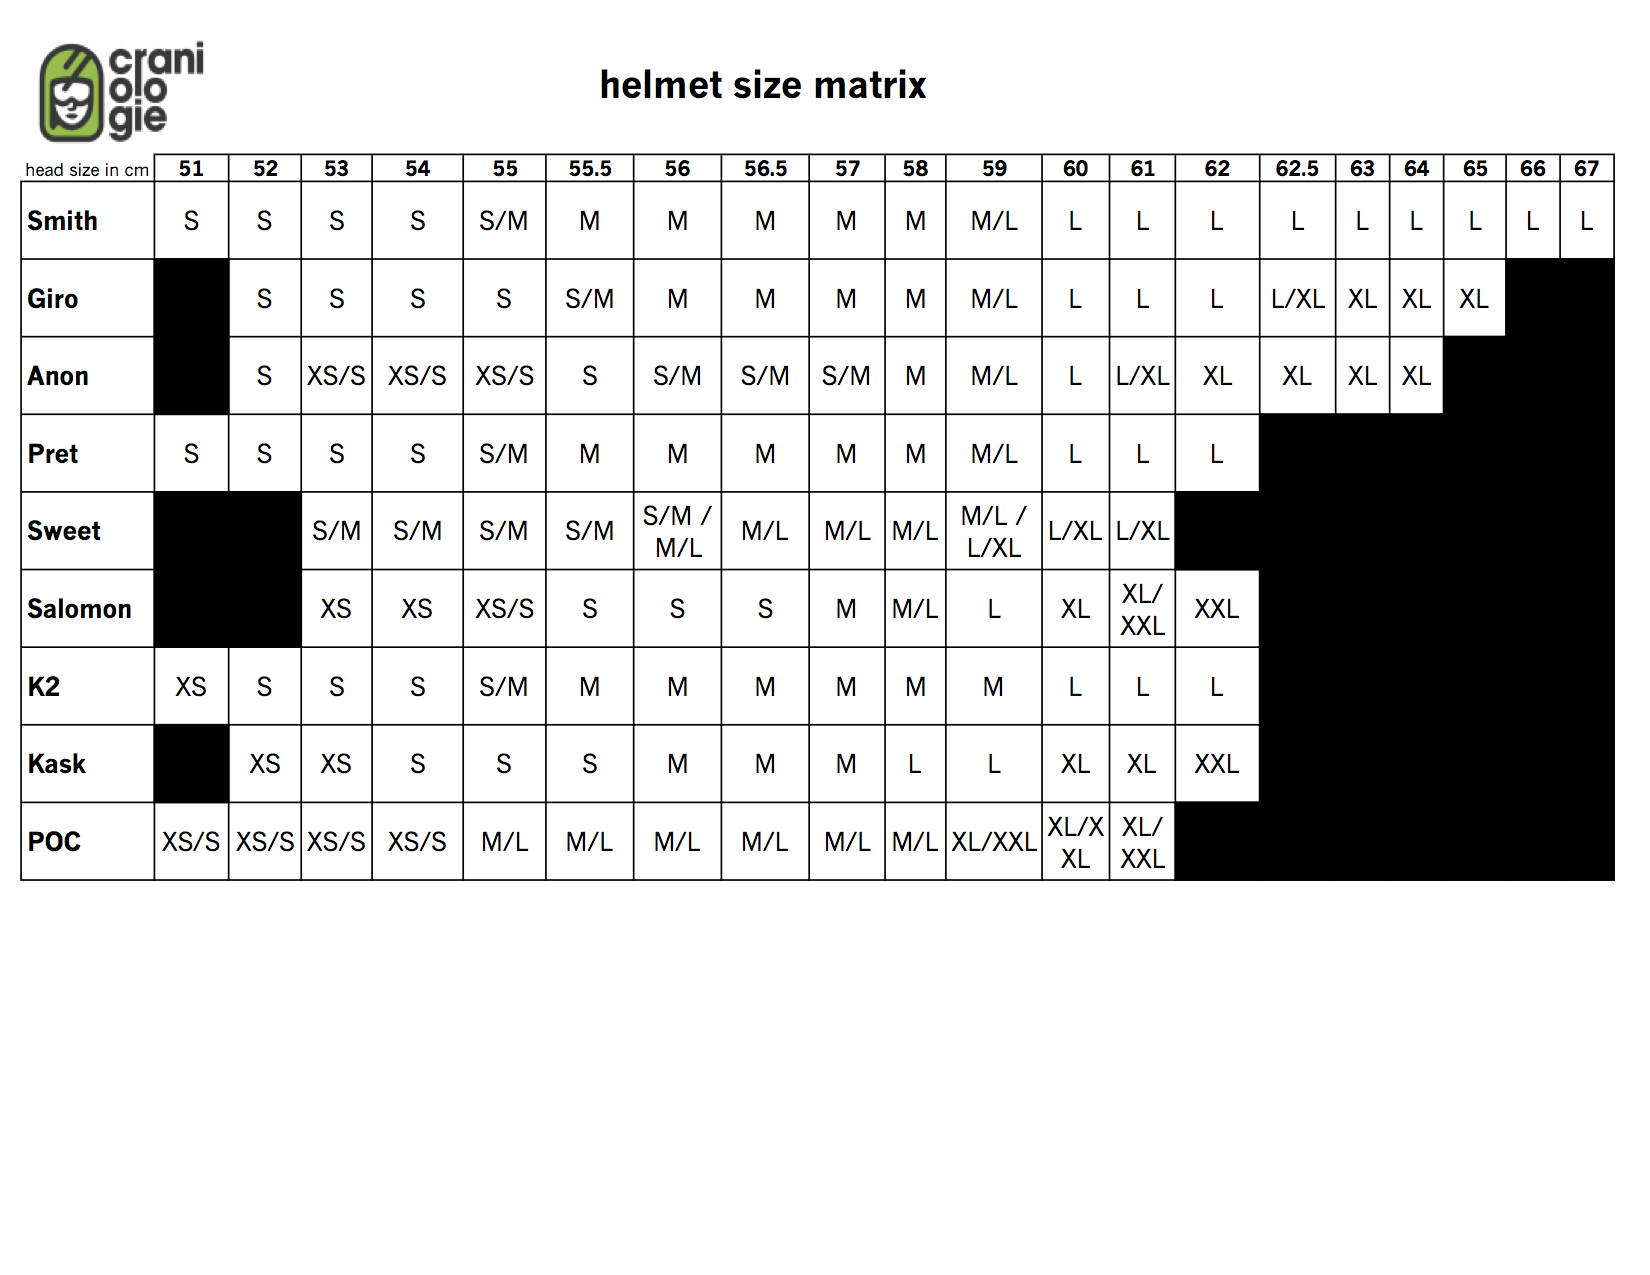 helmet size matrix